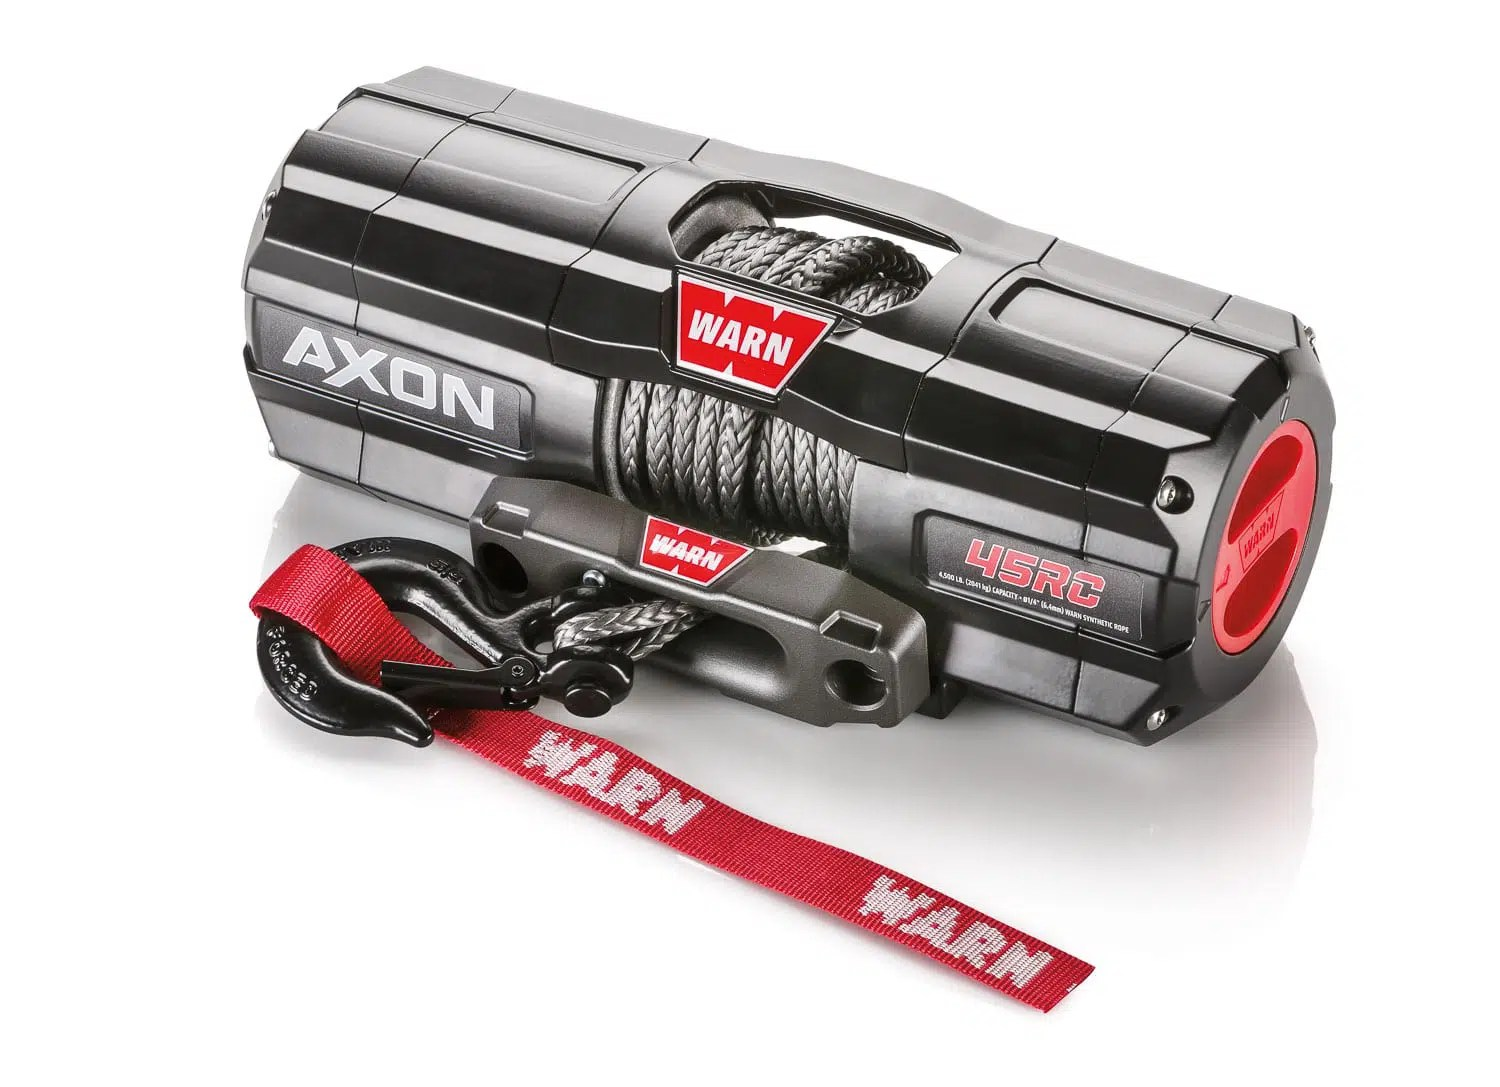 hight resolution of installation of the warn axon 45 rc winch